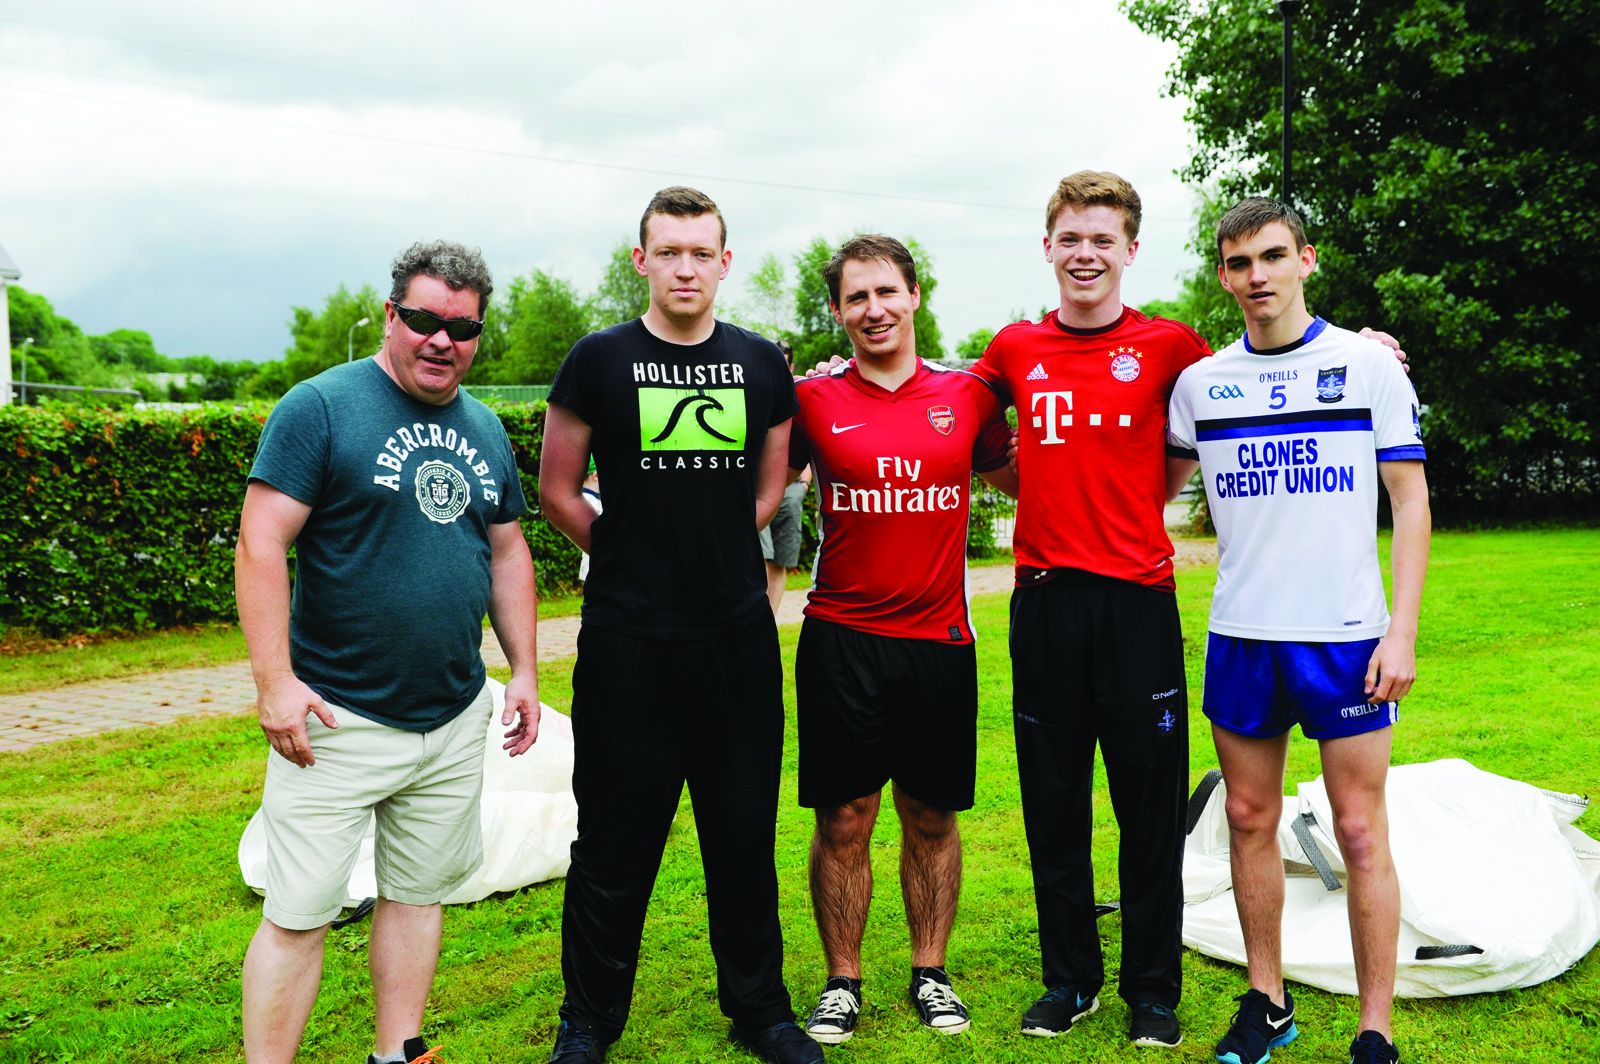 The winners of the It's A Knockout with Rory McMahon, coordinator of the event. (L-R) Rory McMahon, Christopher Cadden, David, Luke Rehill and Caolan McDonald. ©Rory Geary/The Northern Standard